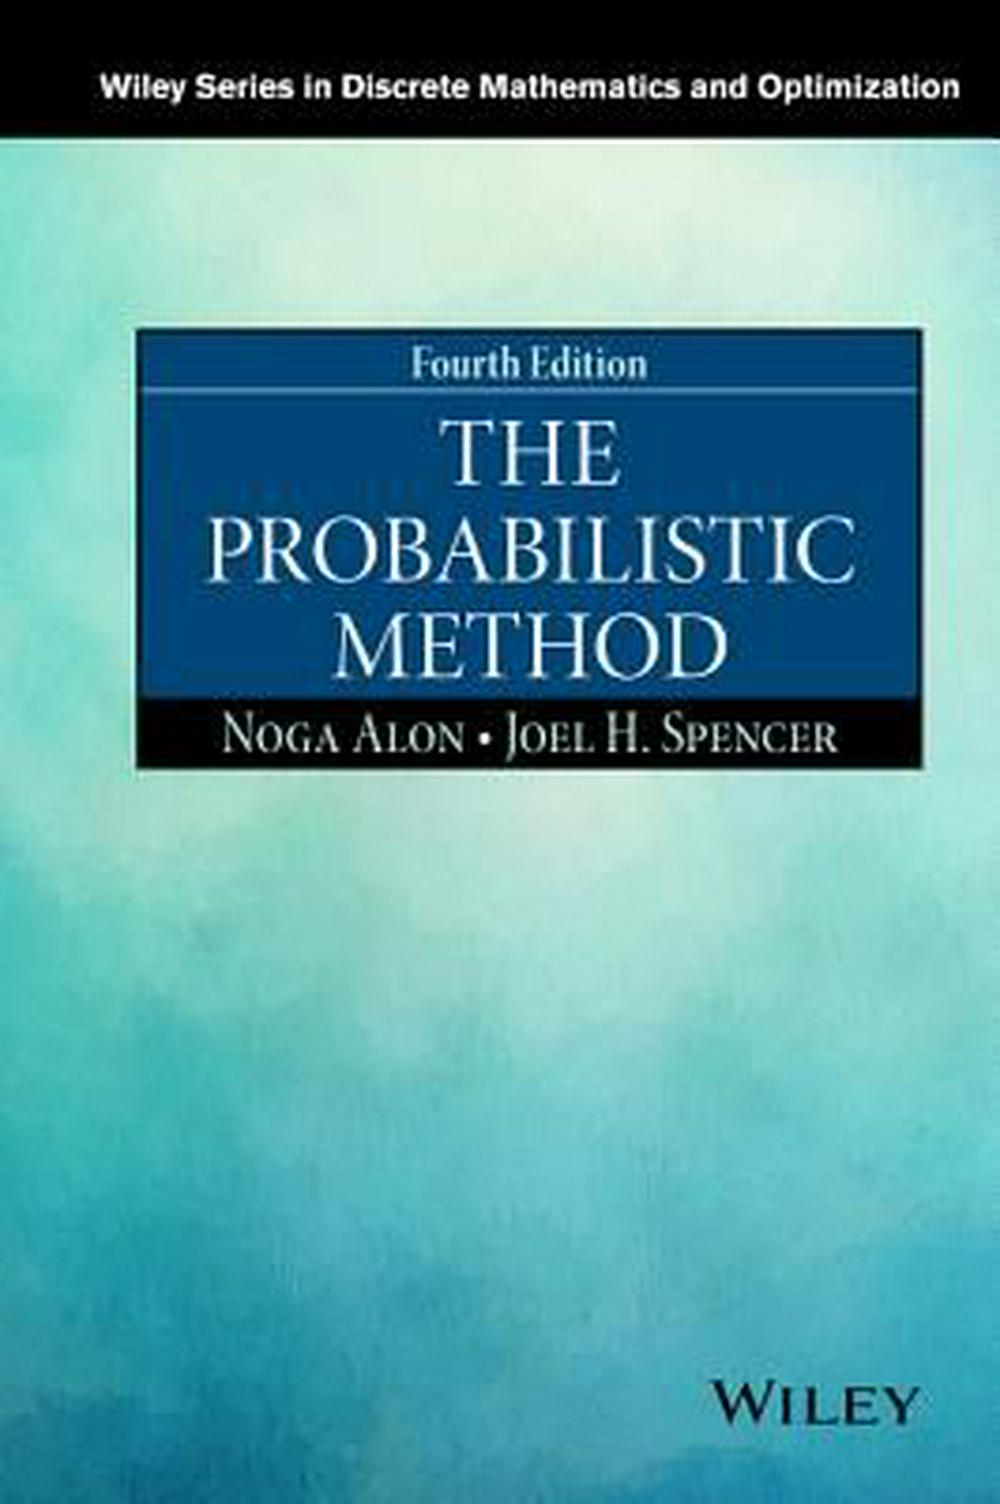 The Probabilistic Method (Wiley Series in Discrete Mathematics and Optimization)